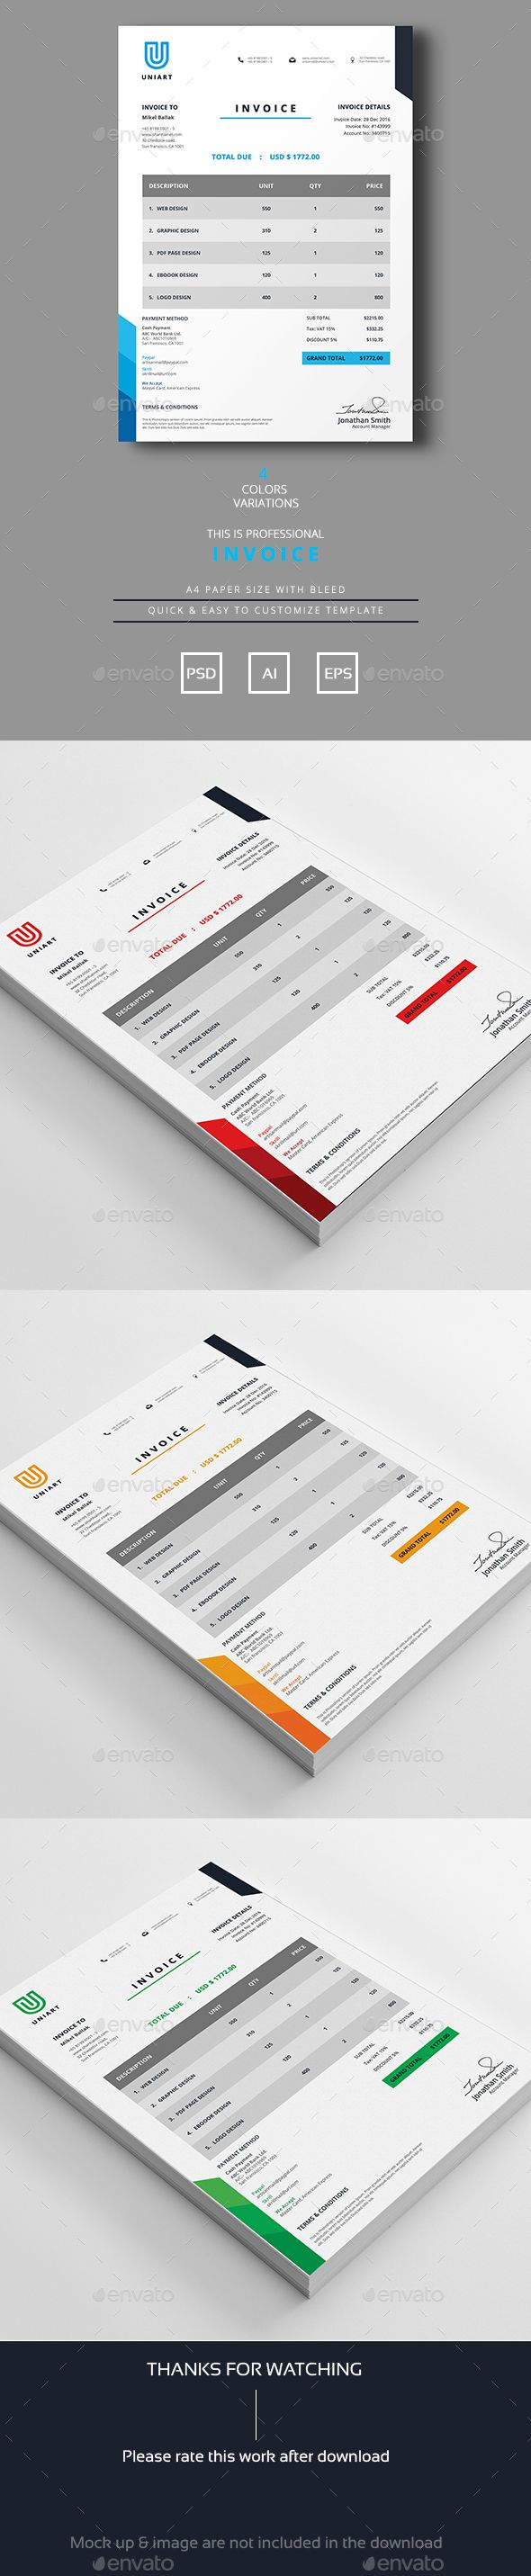 191 best Proposal & Invoice Templates images on Pinterest | Invoice ...